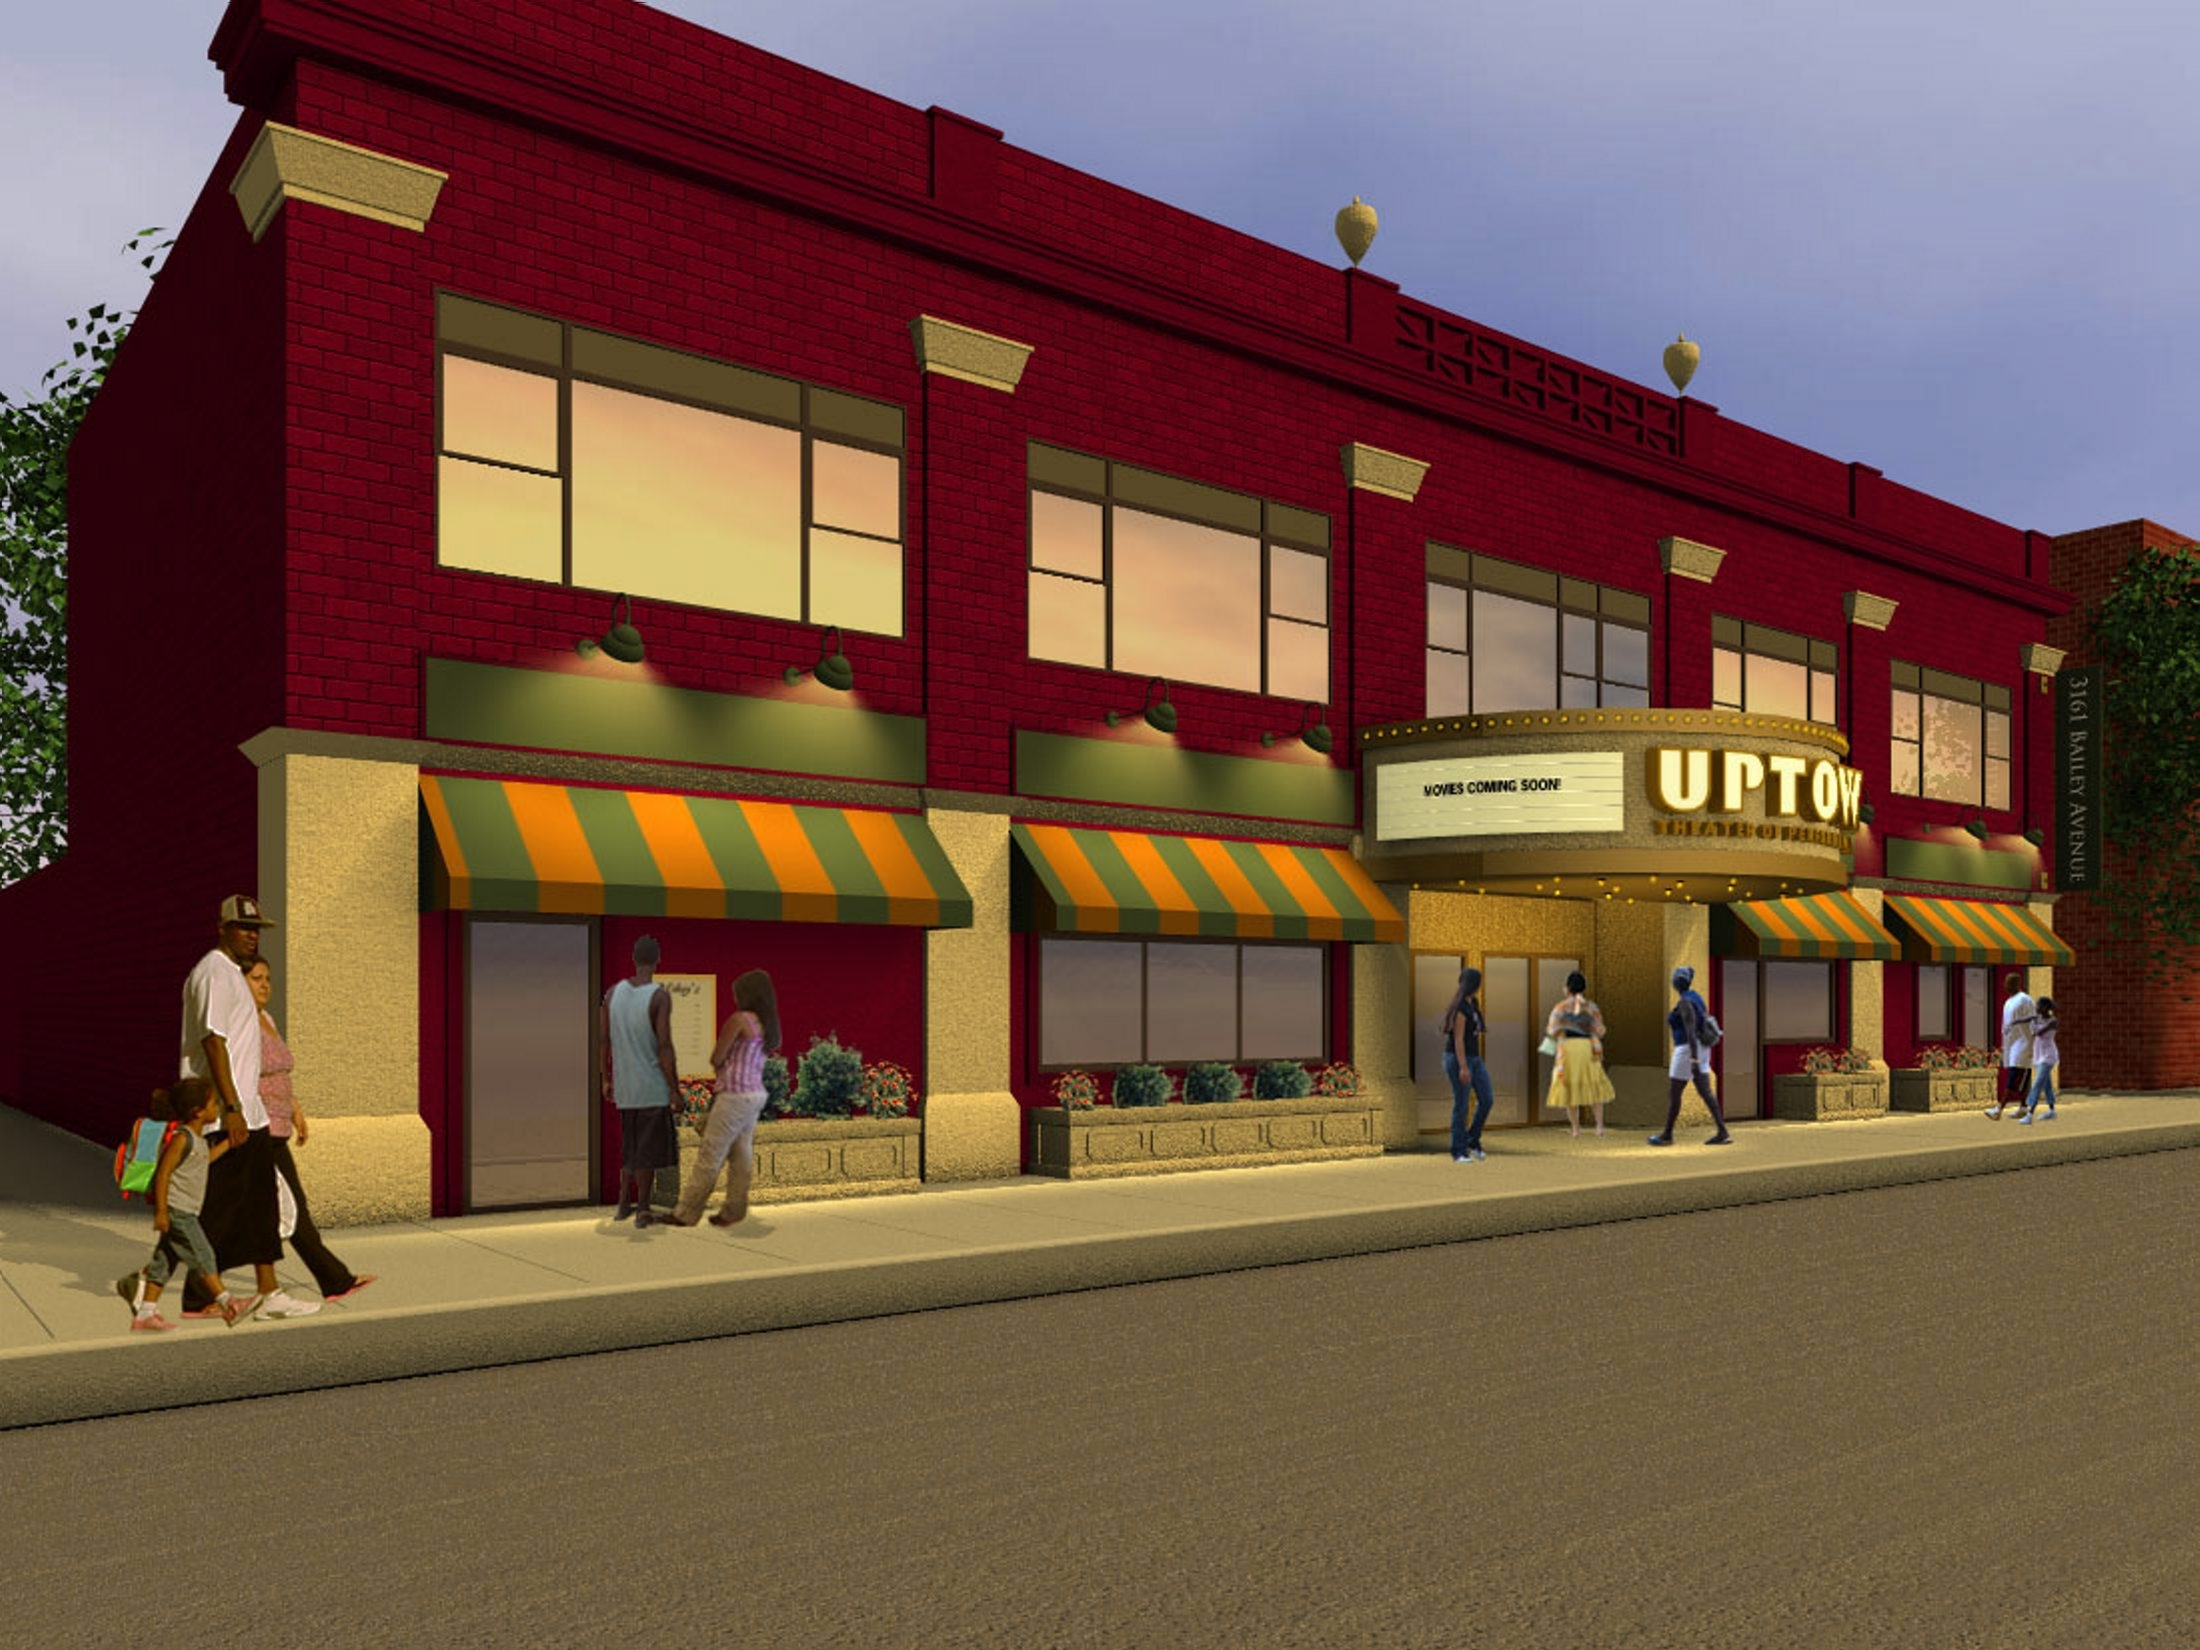 An artist's rendering depicts what the Uptown Theater will look like after renovations are complete. The Bailey Avenue facility has received a $150,000 grant from the state.